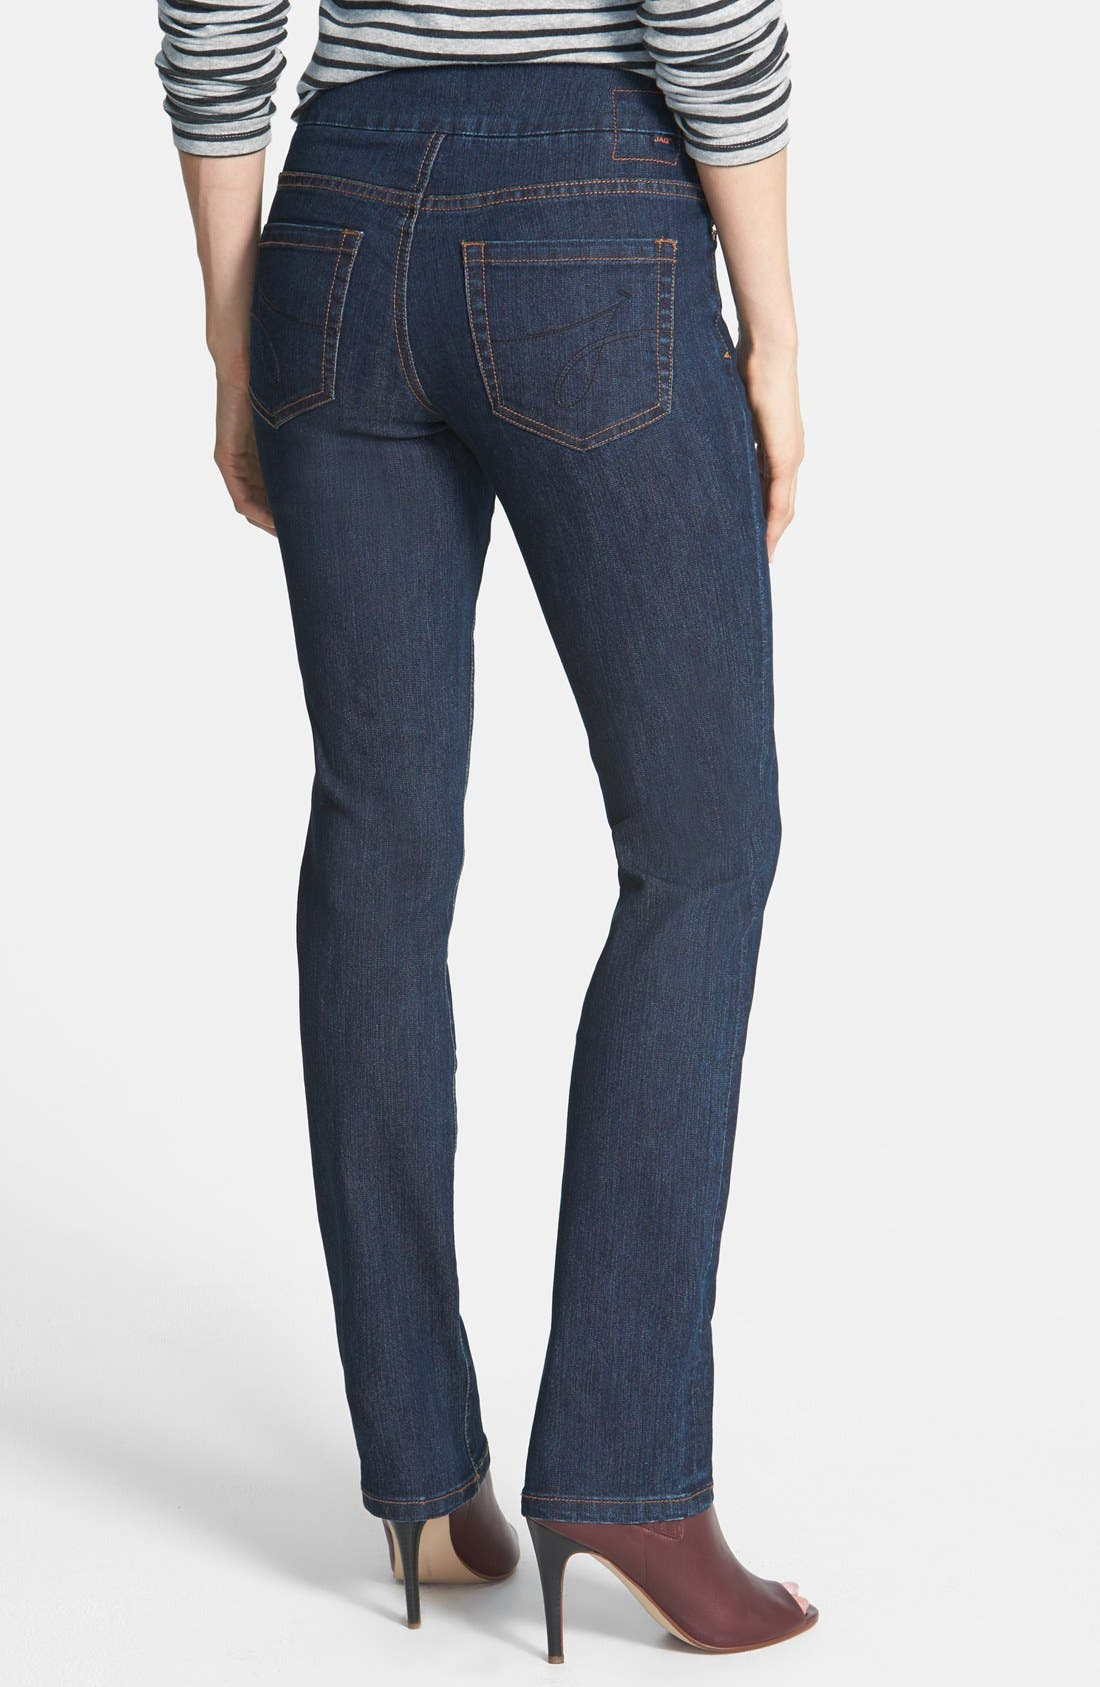 Alternate Image 2  - Jag Jeans 'Peri' Pull-On Straight Leg Jeans (Dark Shadow) (Online Only)